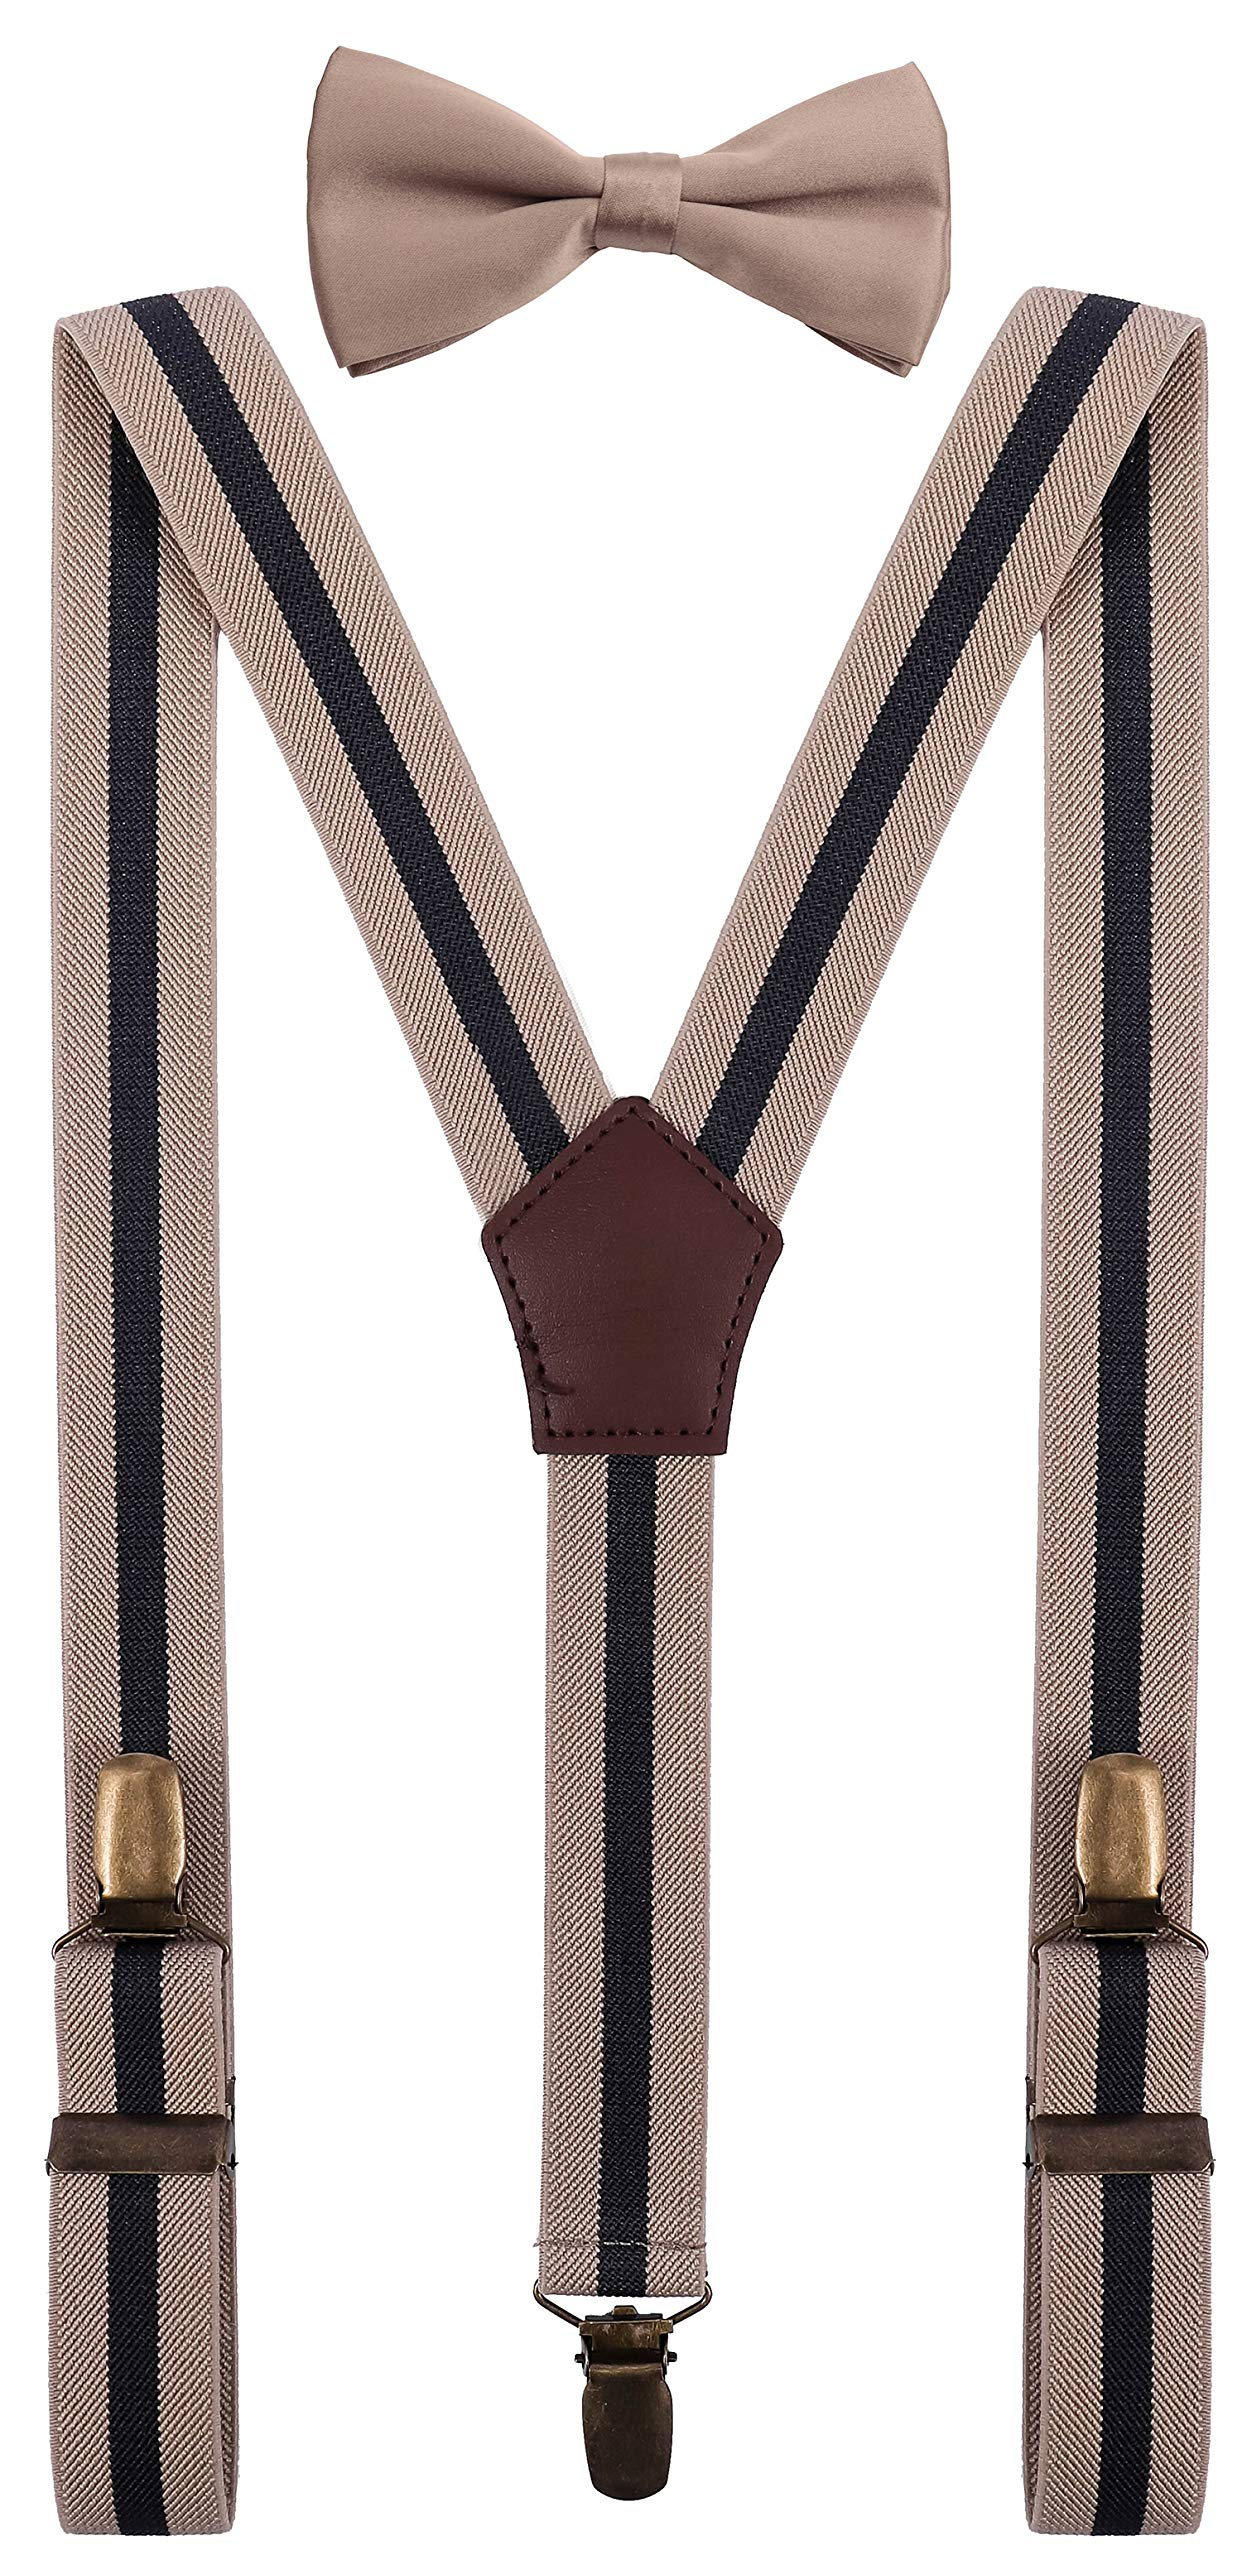 YJDS Baby Cute Suspenders Bowtie Set Adjustable Strong Clips Khaki Stripes 30''